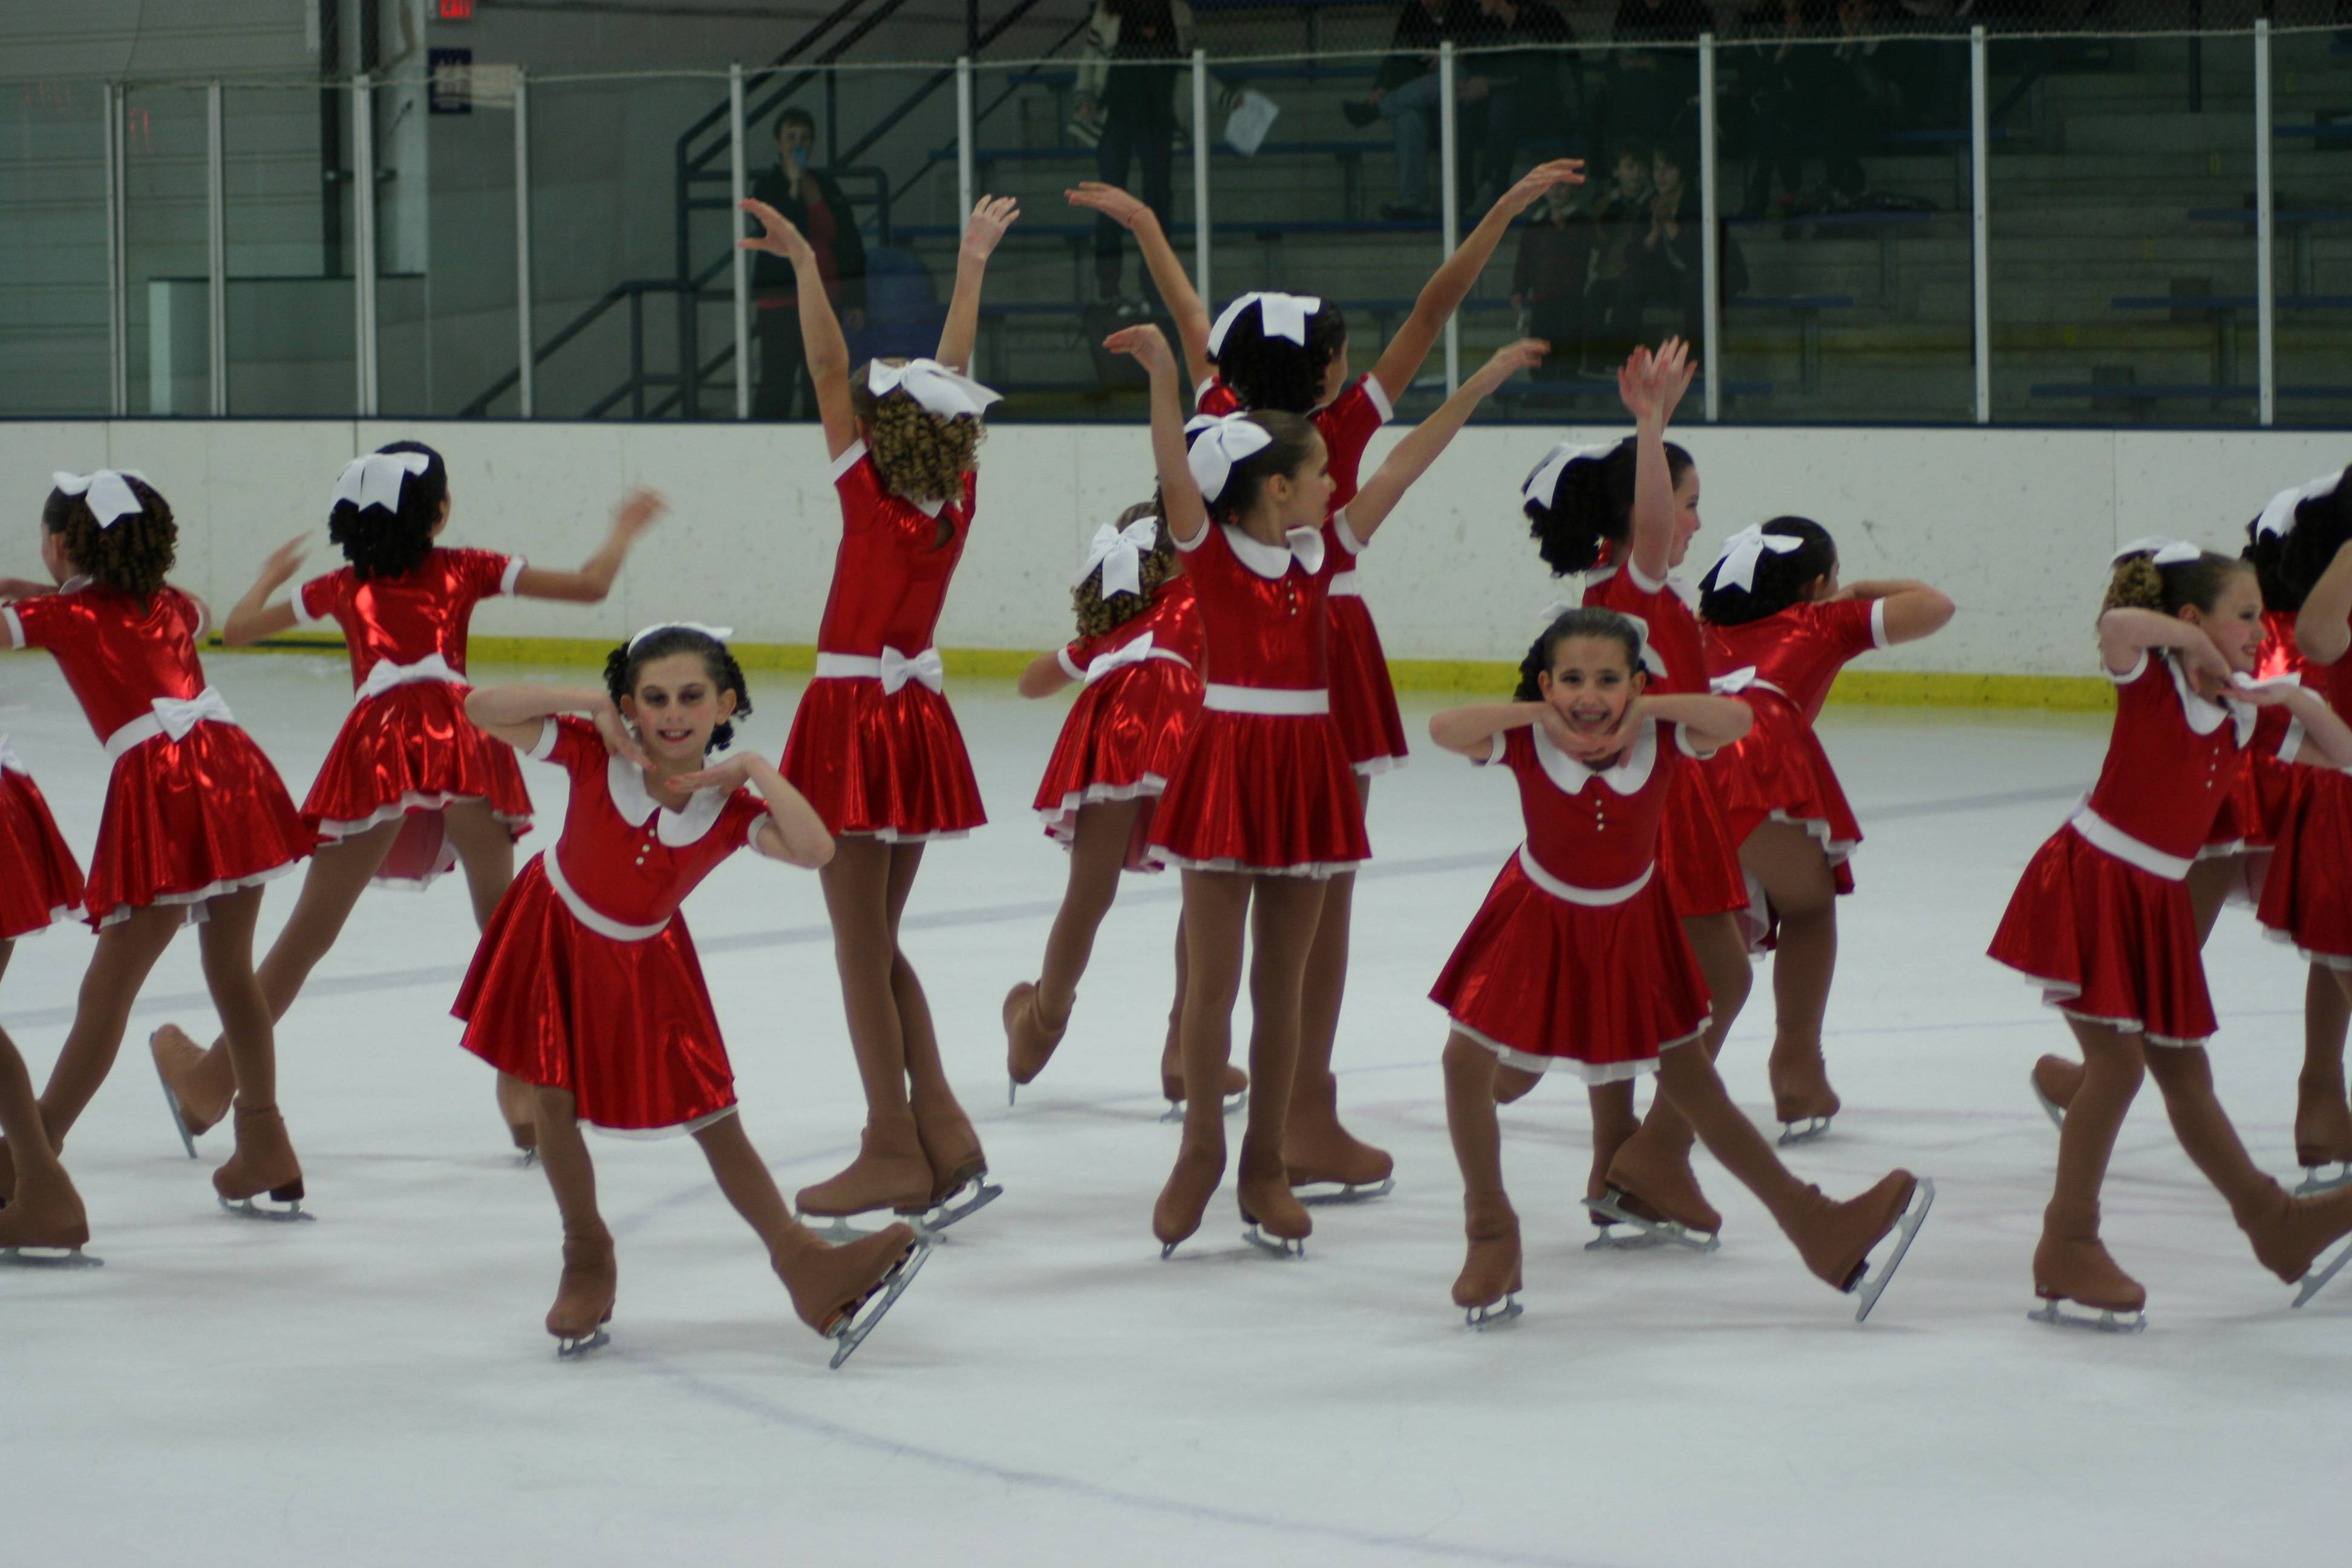 The Preliminary Team performs at the Starlights' November Exhibition at Twin Rinks Ice Pavilion in Buffalo Grove.